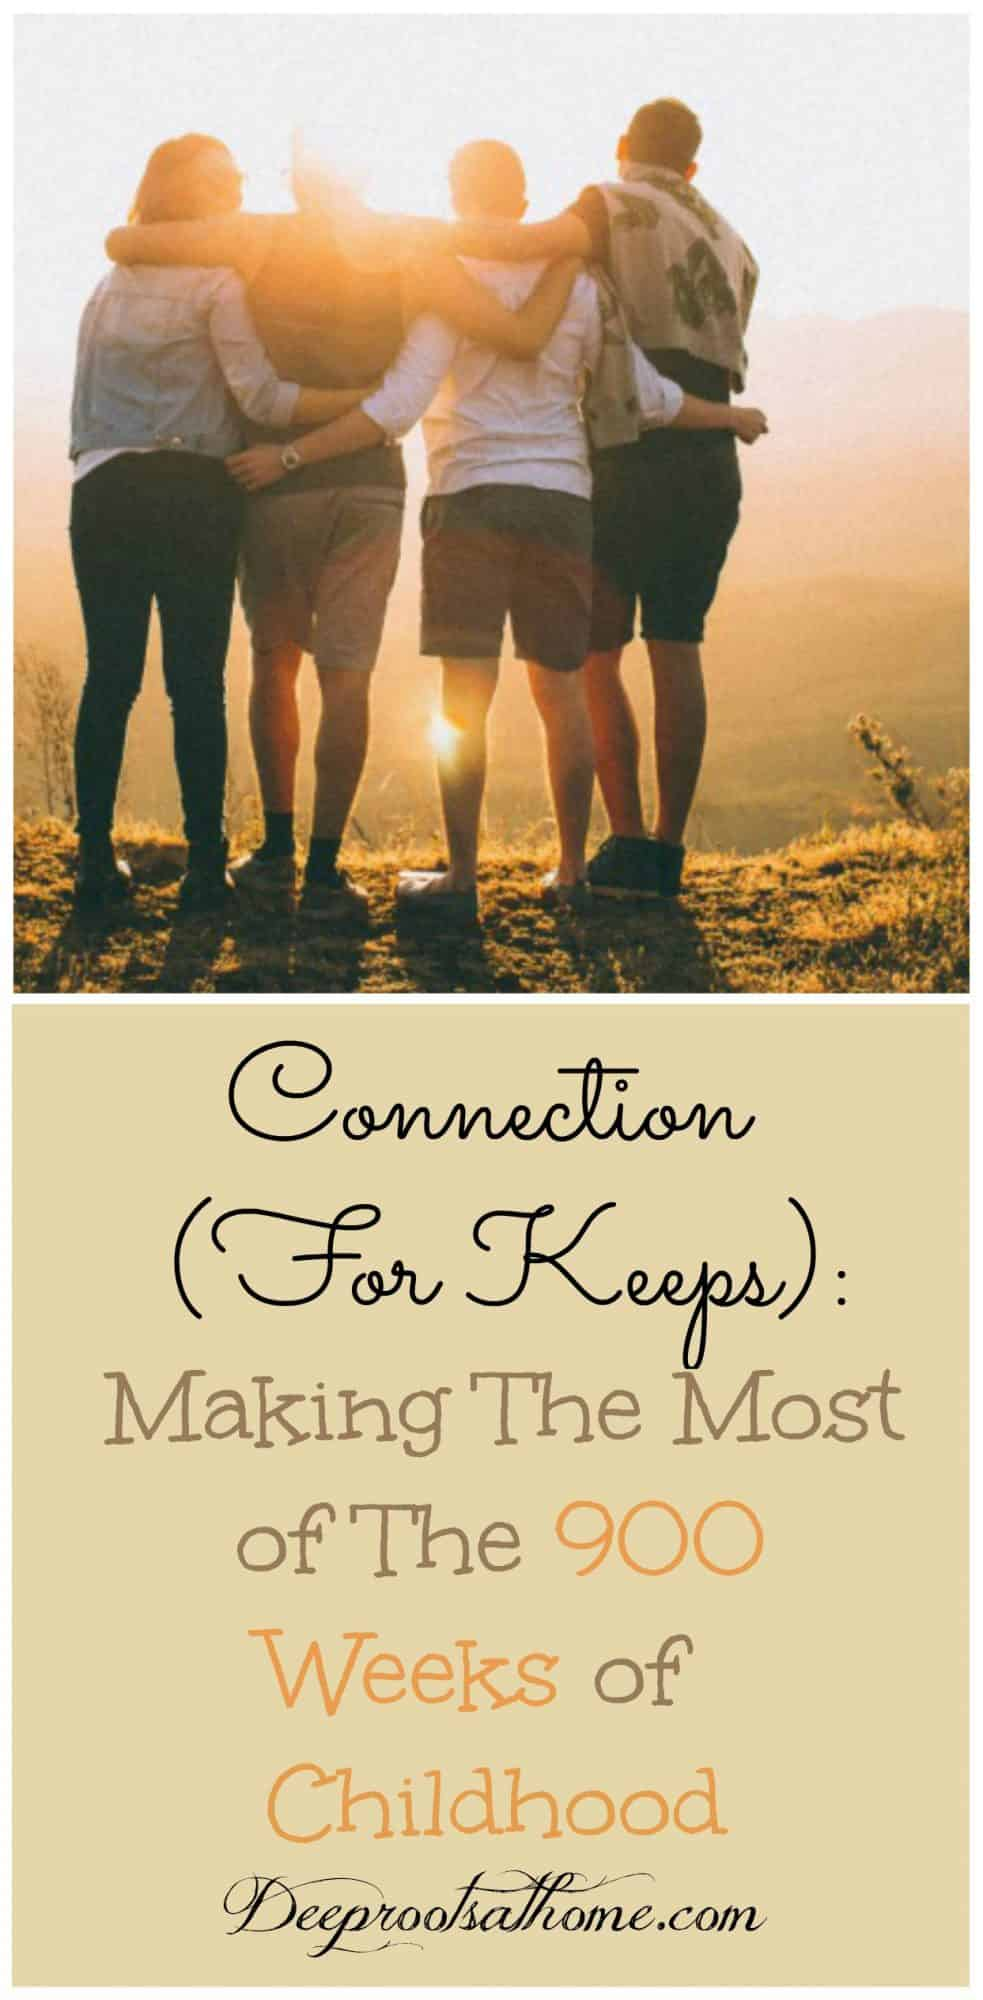 Connection For Keeps: Making The Most of The 900 Weeks Of Childhood, golden years, mental health, family, relationships, bonding, motherhood, baby love, precious moments, cuddles, snuggles, independence, kisses, bedtime, humans, relational beings, dependency, community, interaction, love, respect, need, L.R. Knost, infants, children, kids, parenting, friendships, social, secure, attachment parenting, baby wearing, co-sleeping, expressions of love, approval, quality time, quantity time, smiling, eye contact, affection, listening, emotions, parent/child, stages, mutual respect, discipline, disobedience, intimate, rules, connected, cooperate, prefrontal cortex, positive interactions, research, childhood,